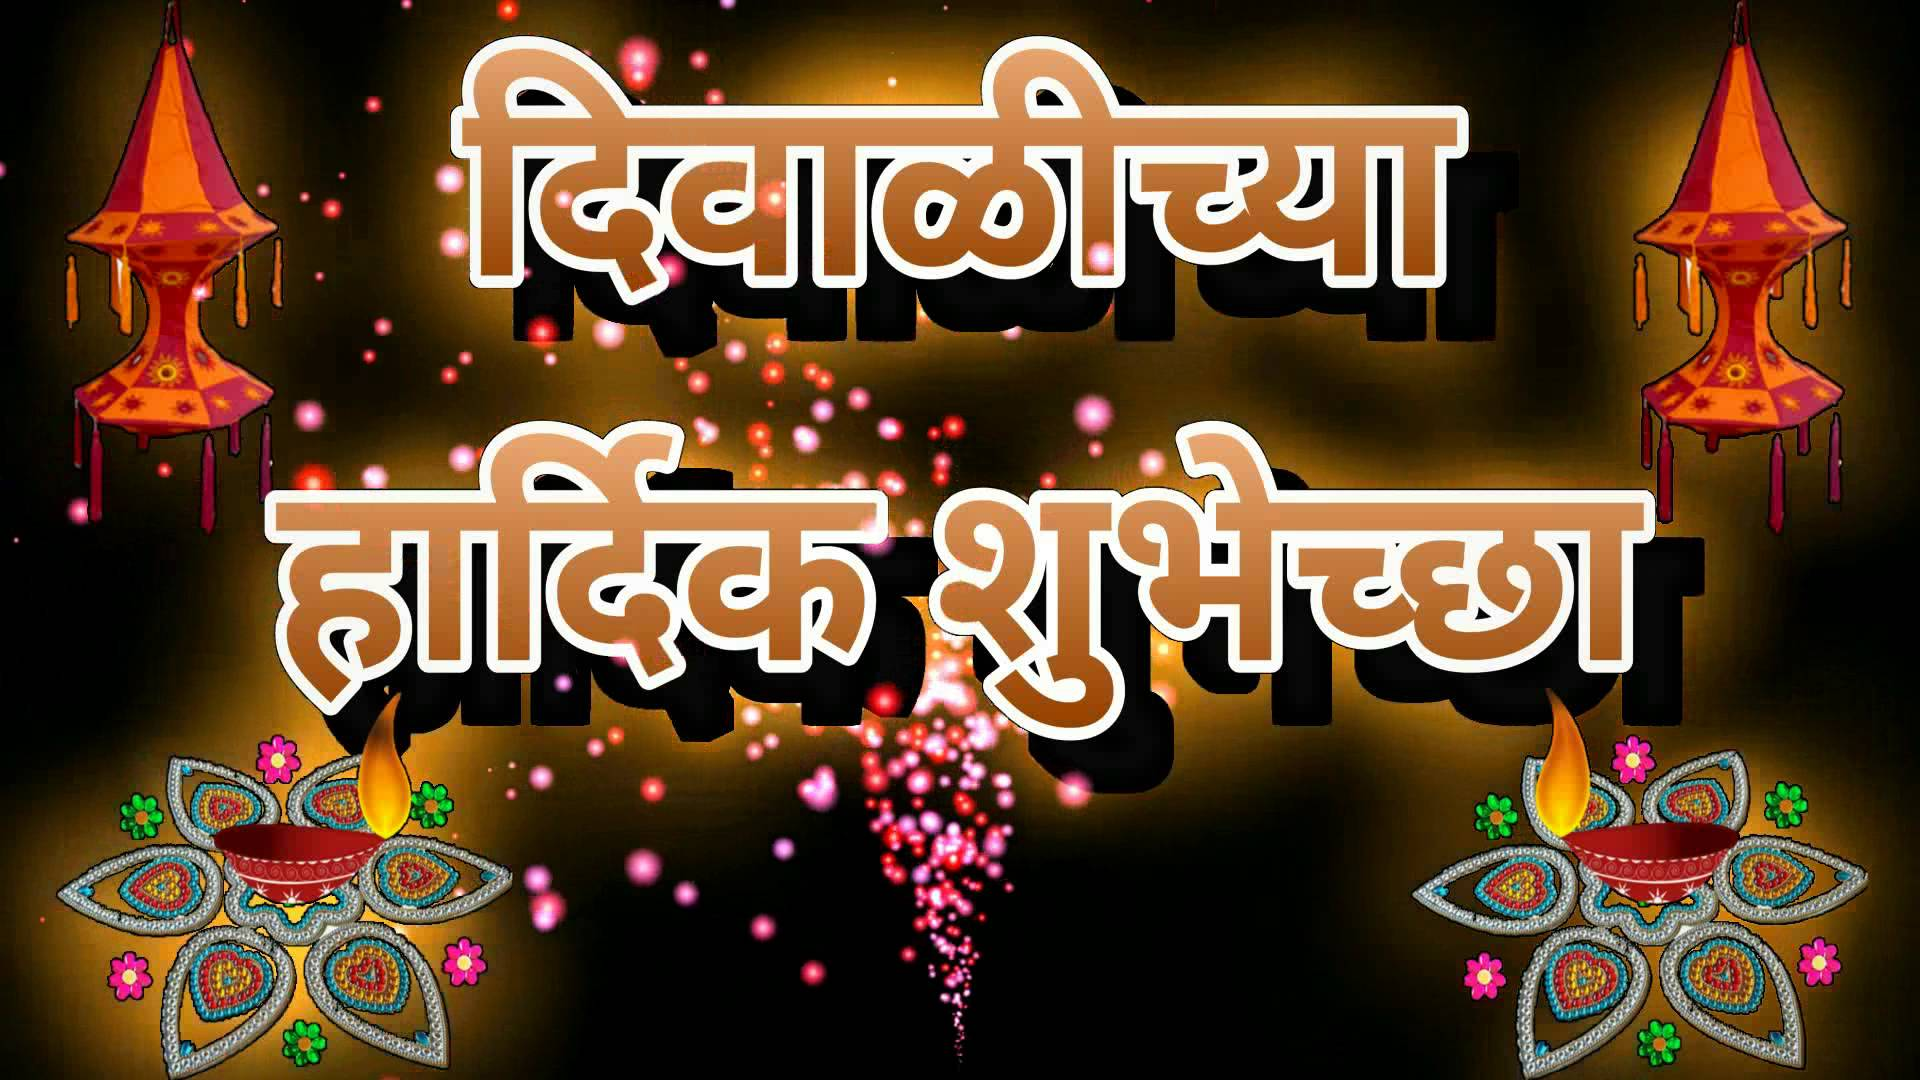 essay on my favourite festival diwali in marathi We went to my daily routine essay english mahabaleshwar for two days happy diwali quotes 2015 , diwali wishes , diwali sms messages essay on my favorite festival diwali diwali quotes wishes images essay on my favorite festival diwali for diwali 2015 , diwali poems & stories , essay on my favorite festival diwali happy diwali quotes find a mentor.